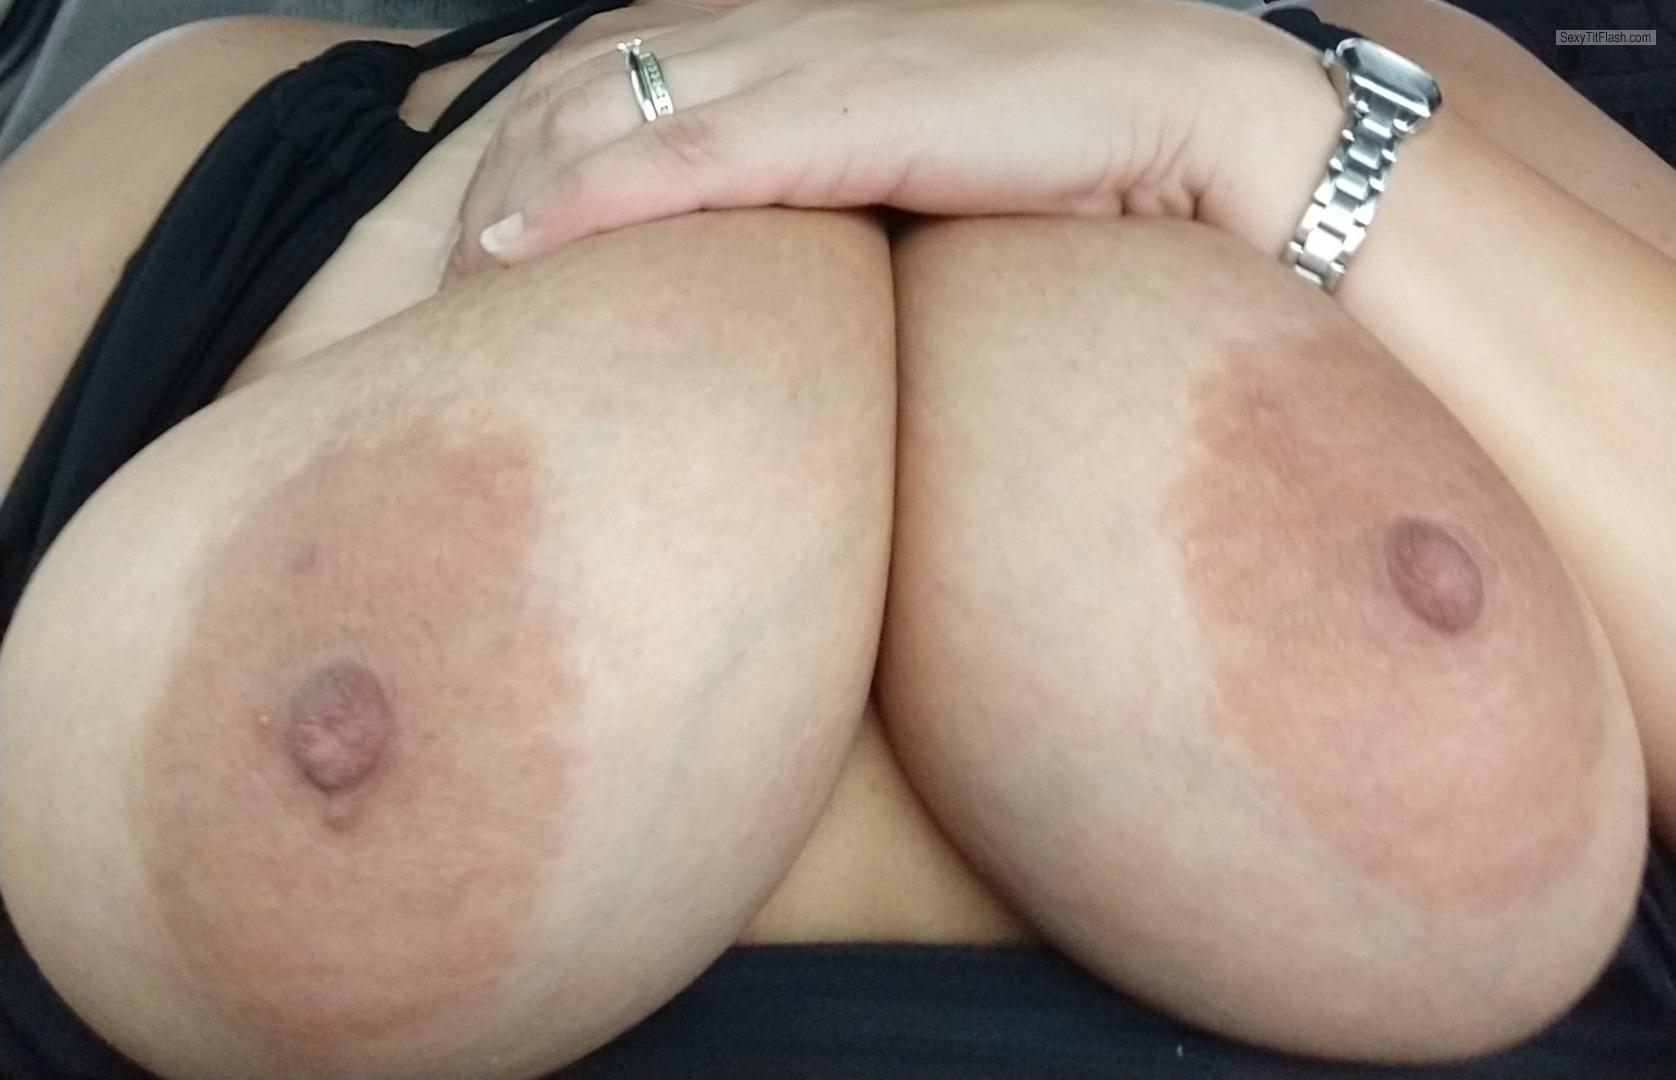 My Big Tits Selfie by Curvy